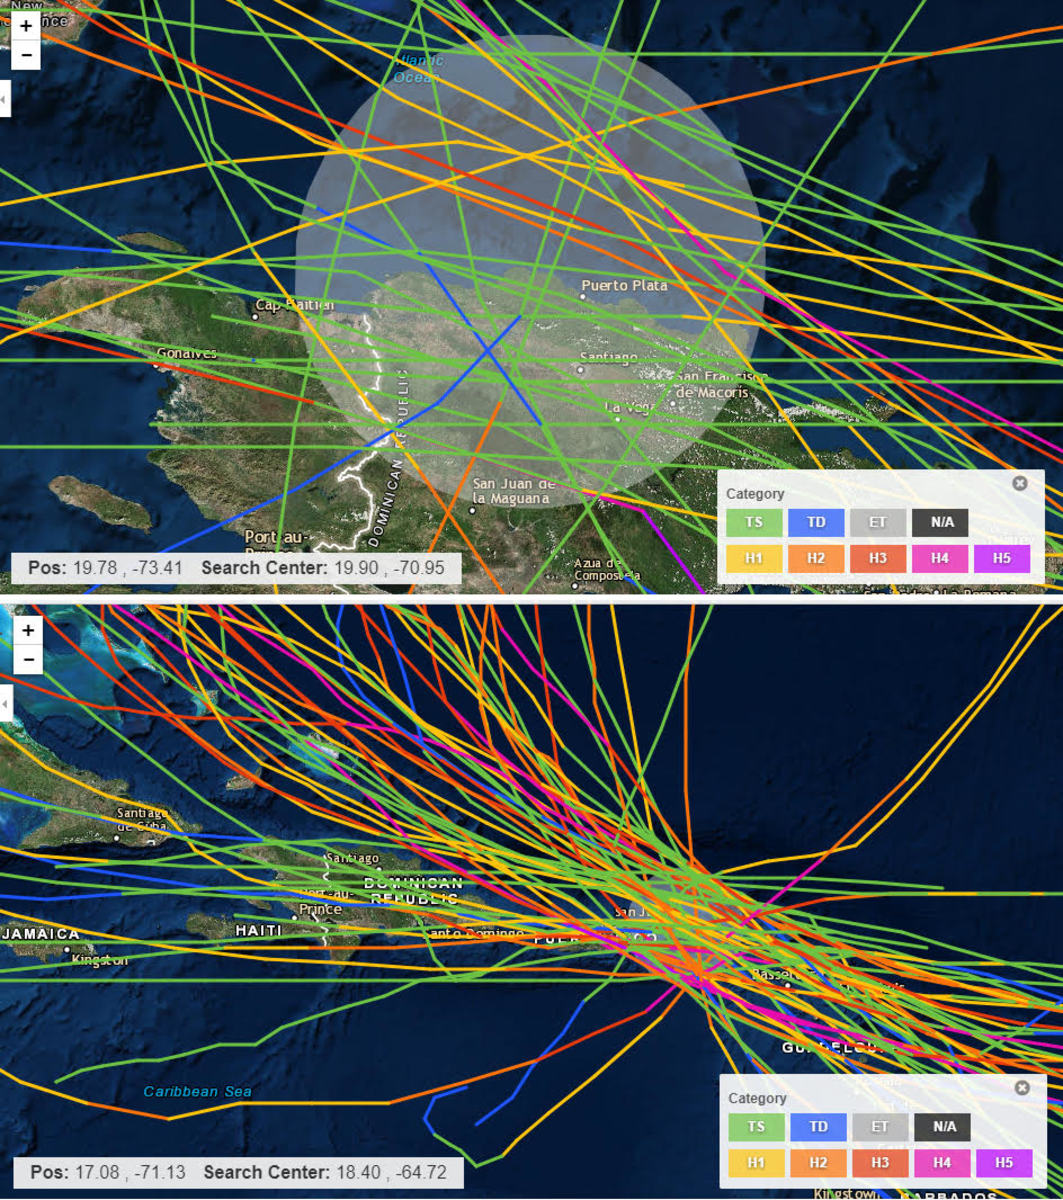 These are all the storm tracks in the Southwest North Atlantic since tracking began in 1851. Luperon is dead center of the circled area in the top image. No hurricanes have hit Luperon since tracking began. The few direct hits have all been tropical storms, which are represented by green lines.